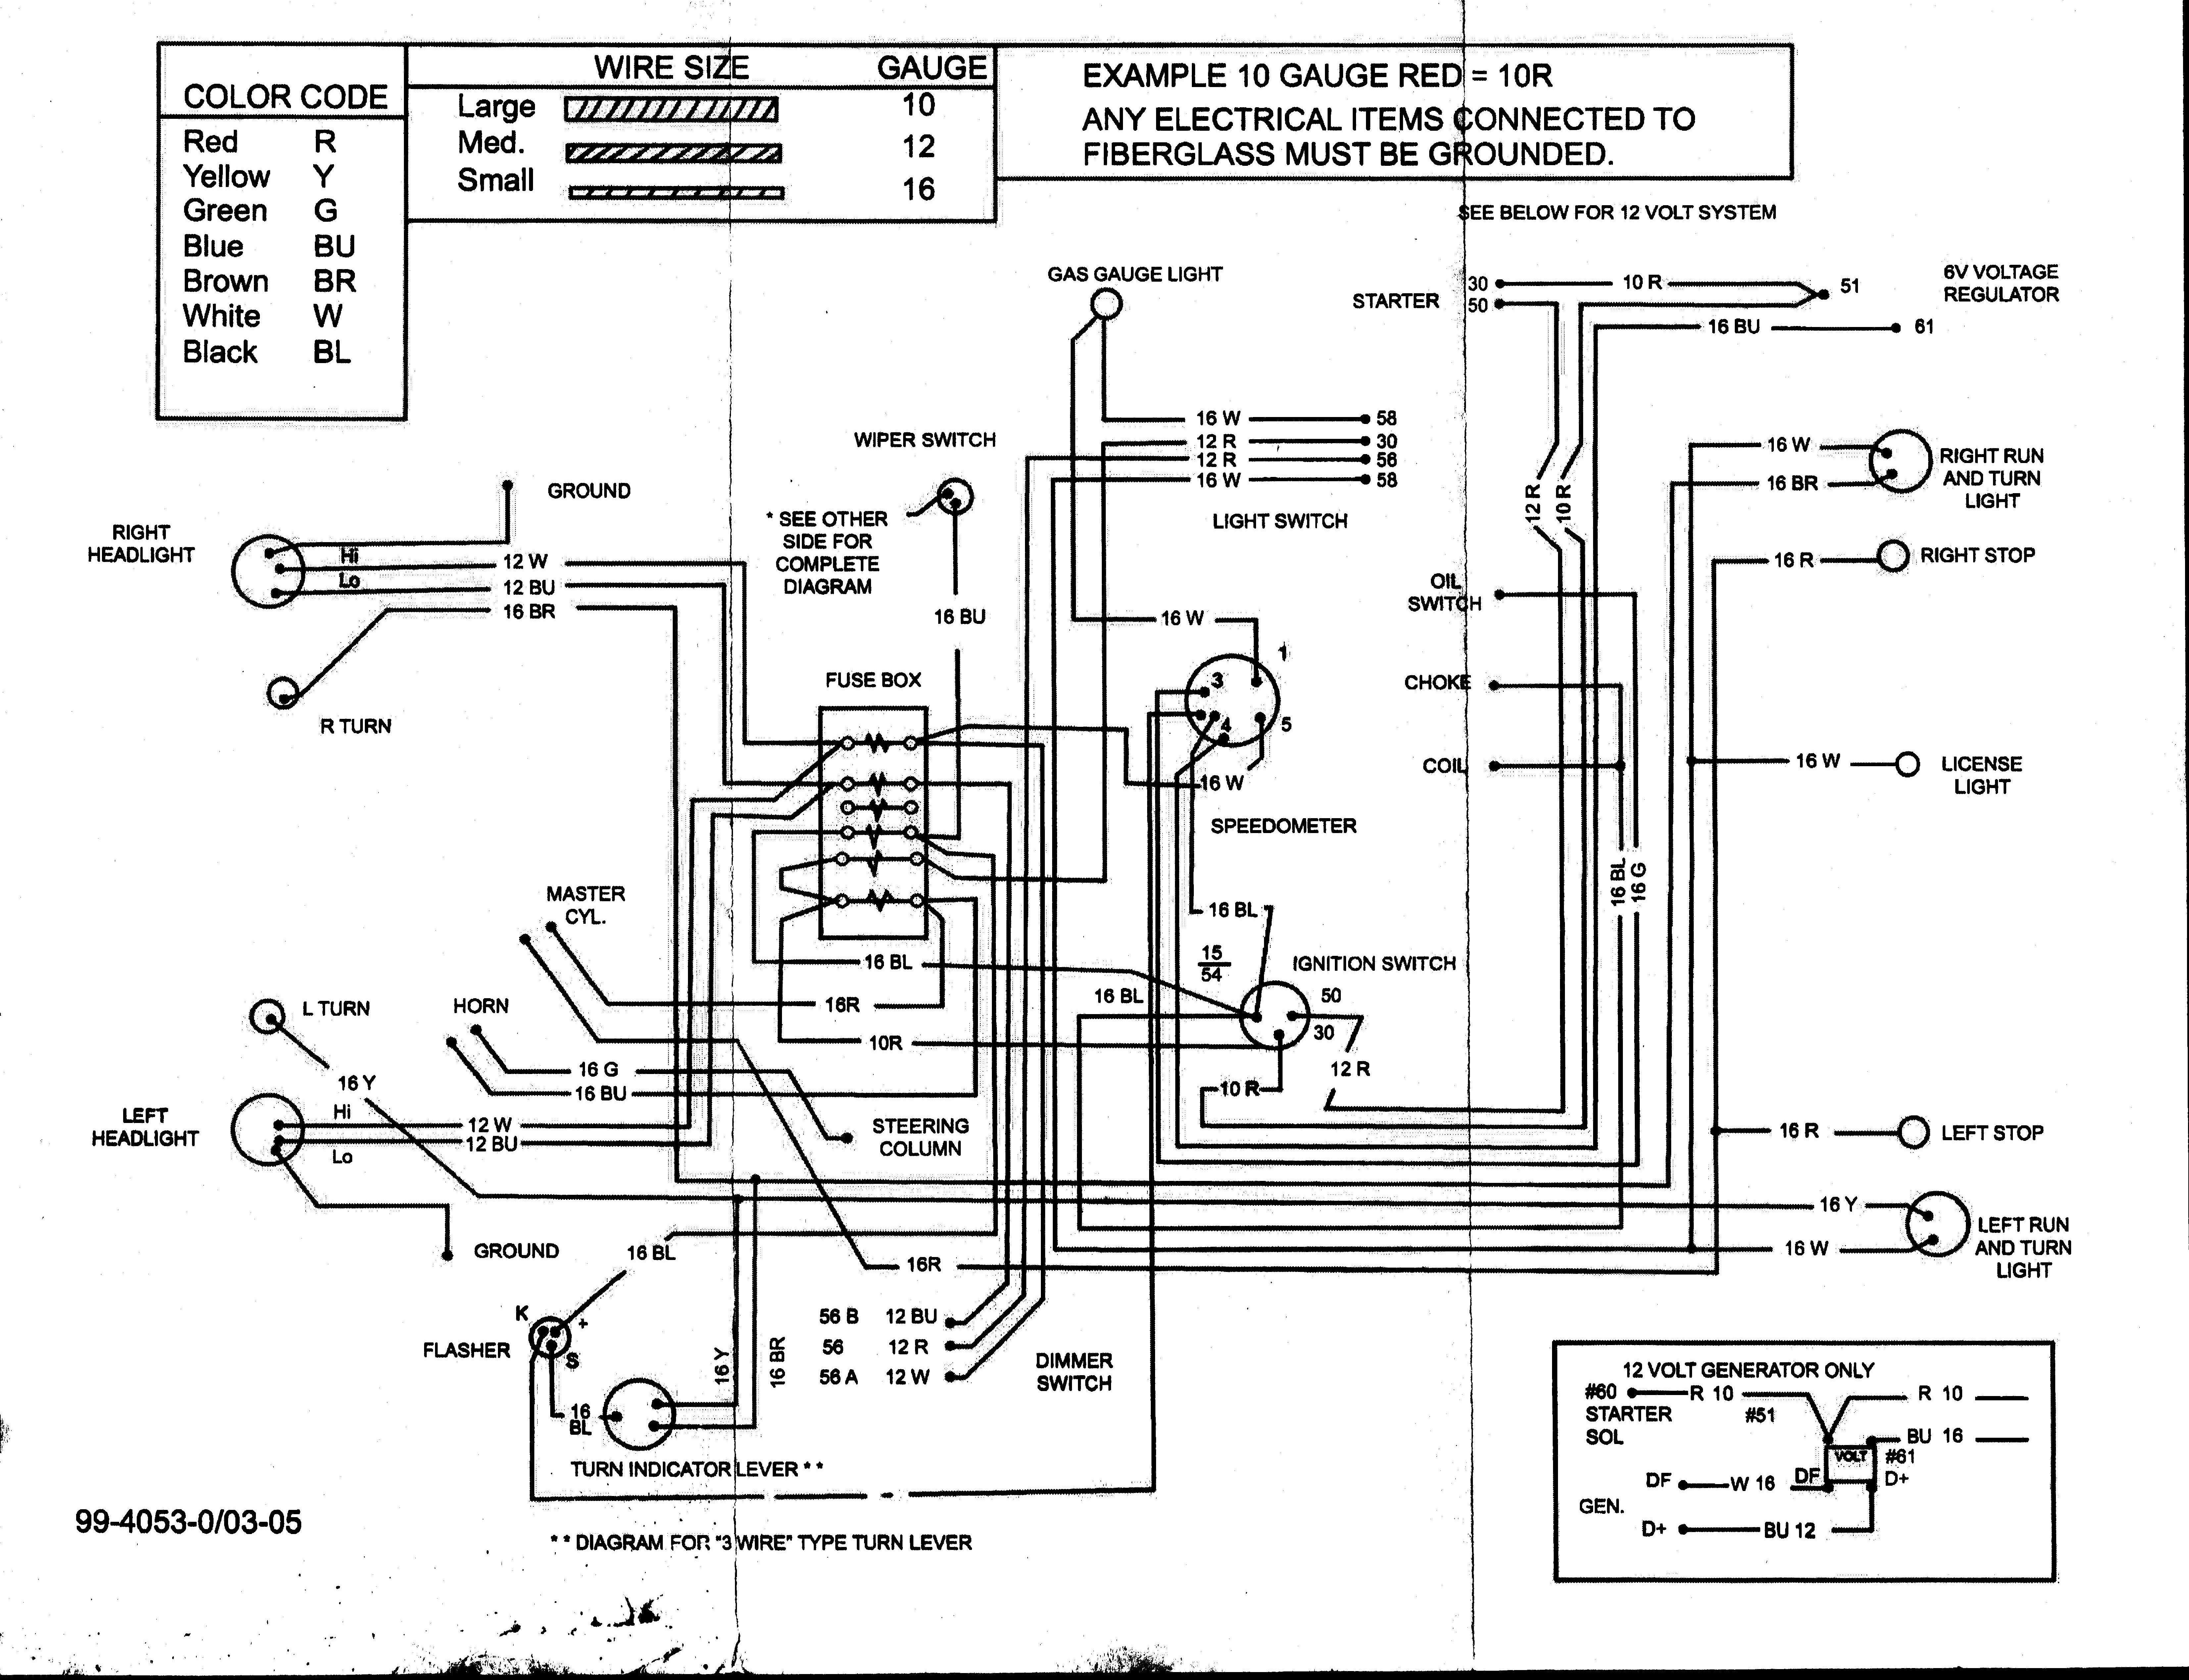 Elec 243 Tables Electronic Schematics Electrical Symbols Electrical Schematic Symbols